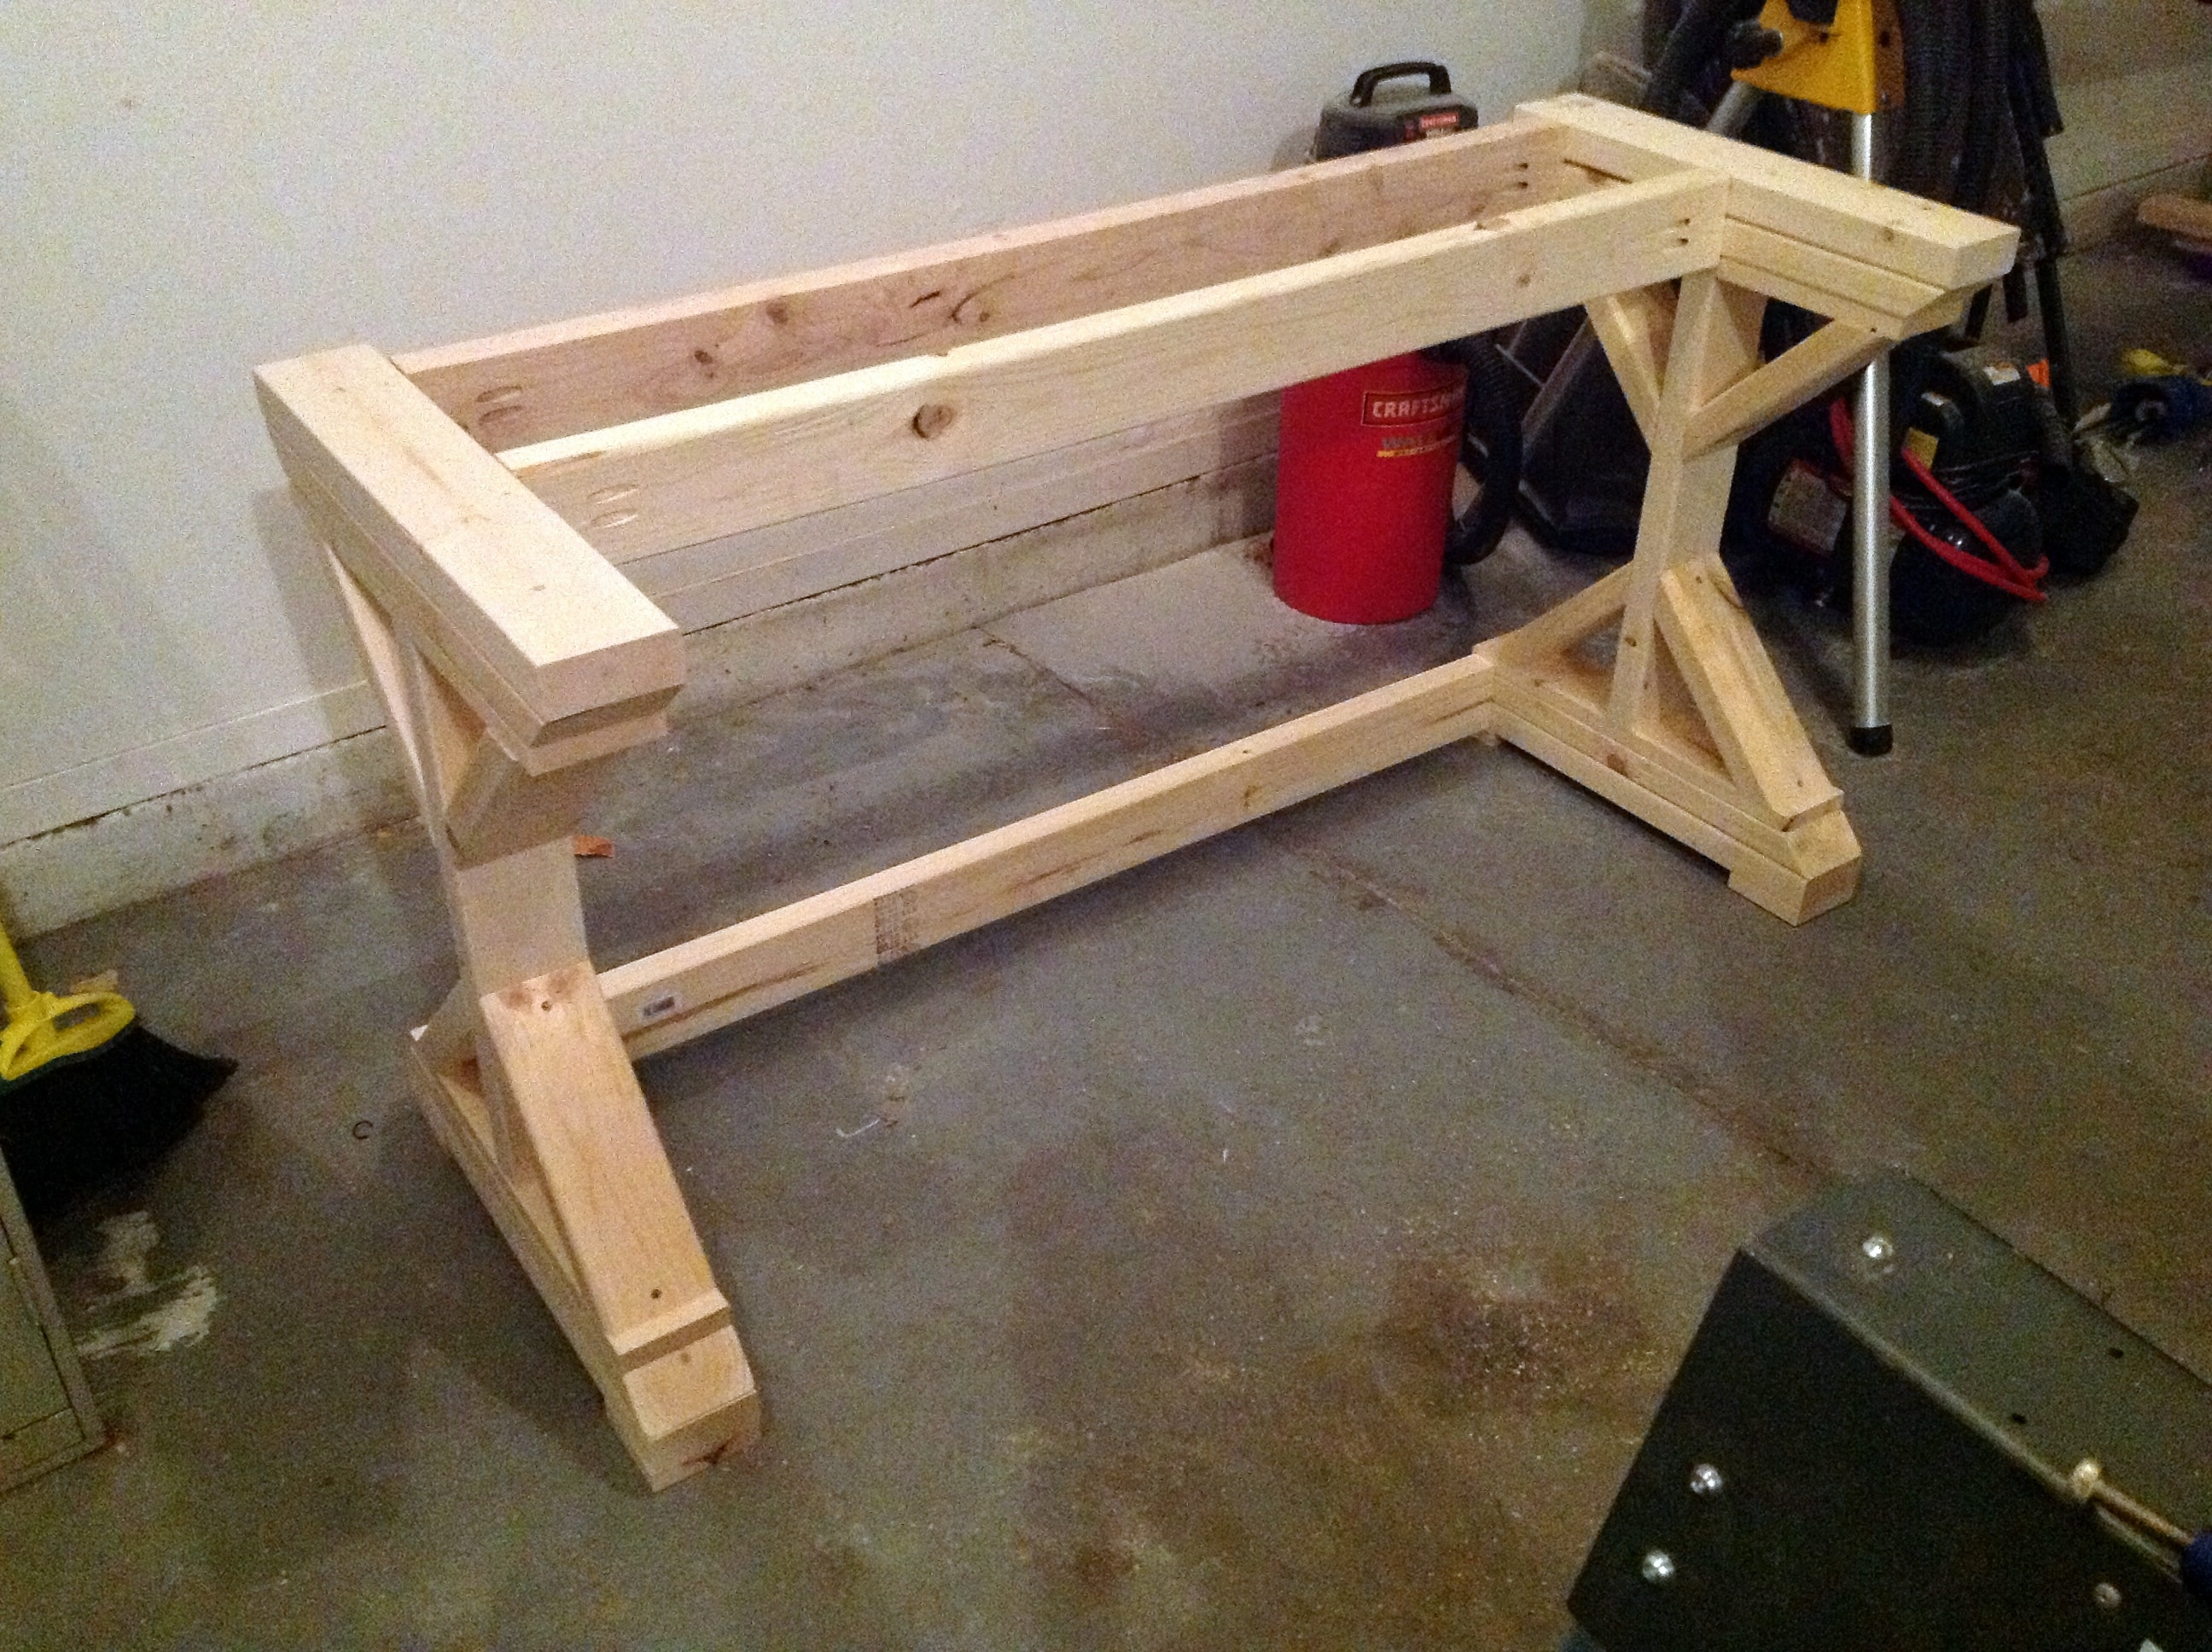 The Ultimate Woodworking Plan For A DIY Desk - The Joinery ...